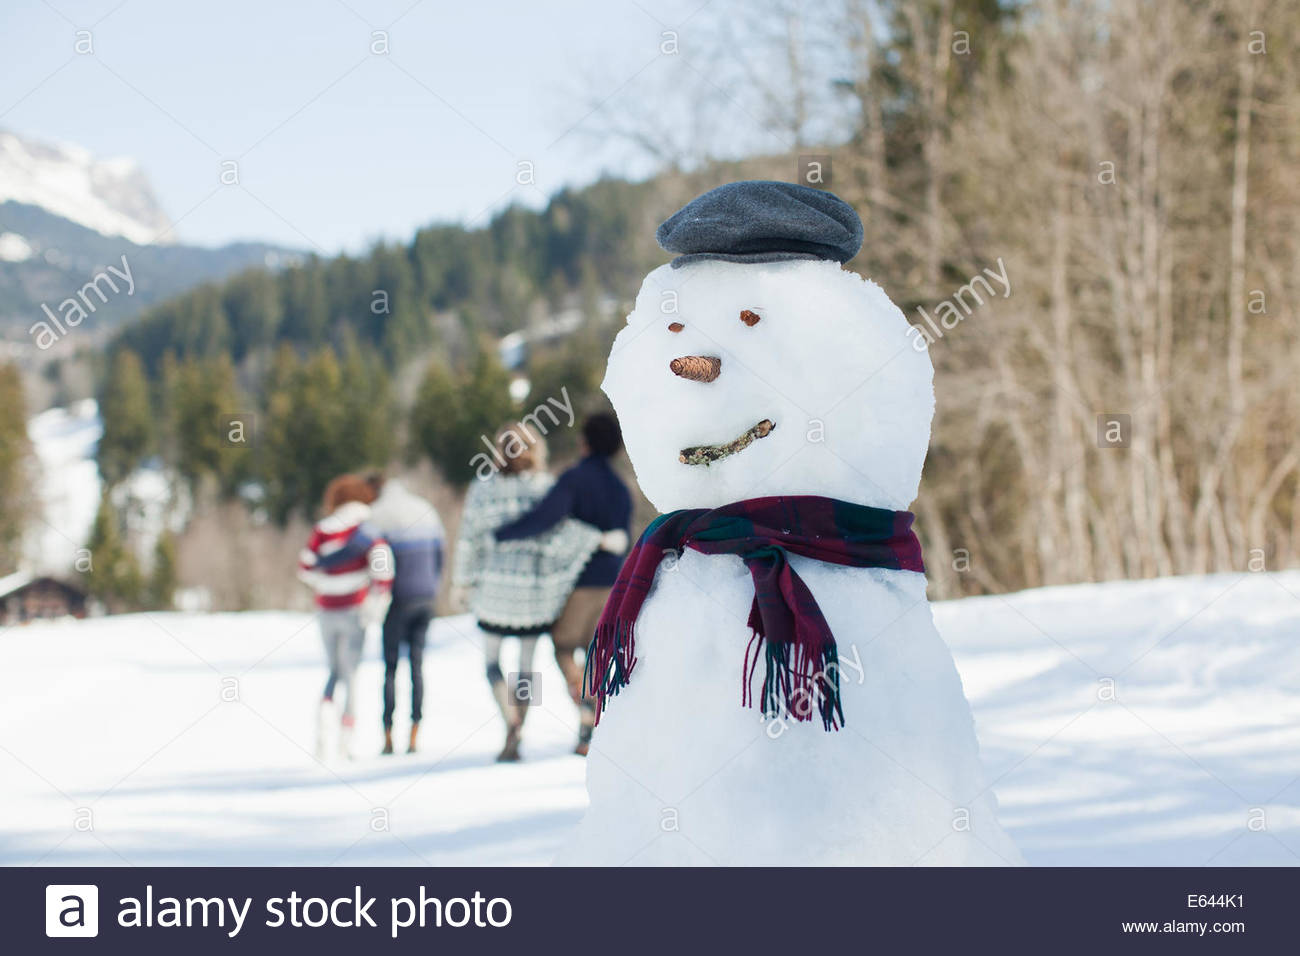 Snowman, people walking in background - Stock Image